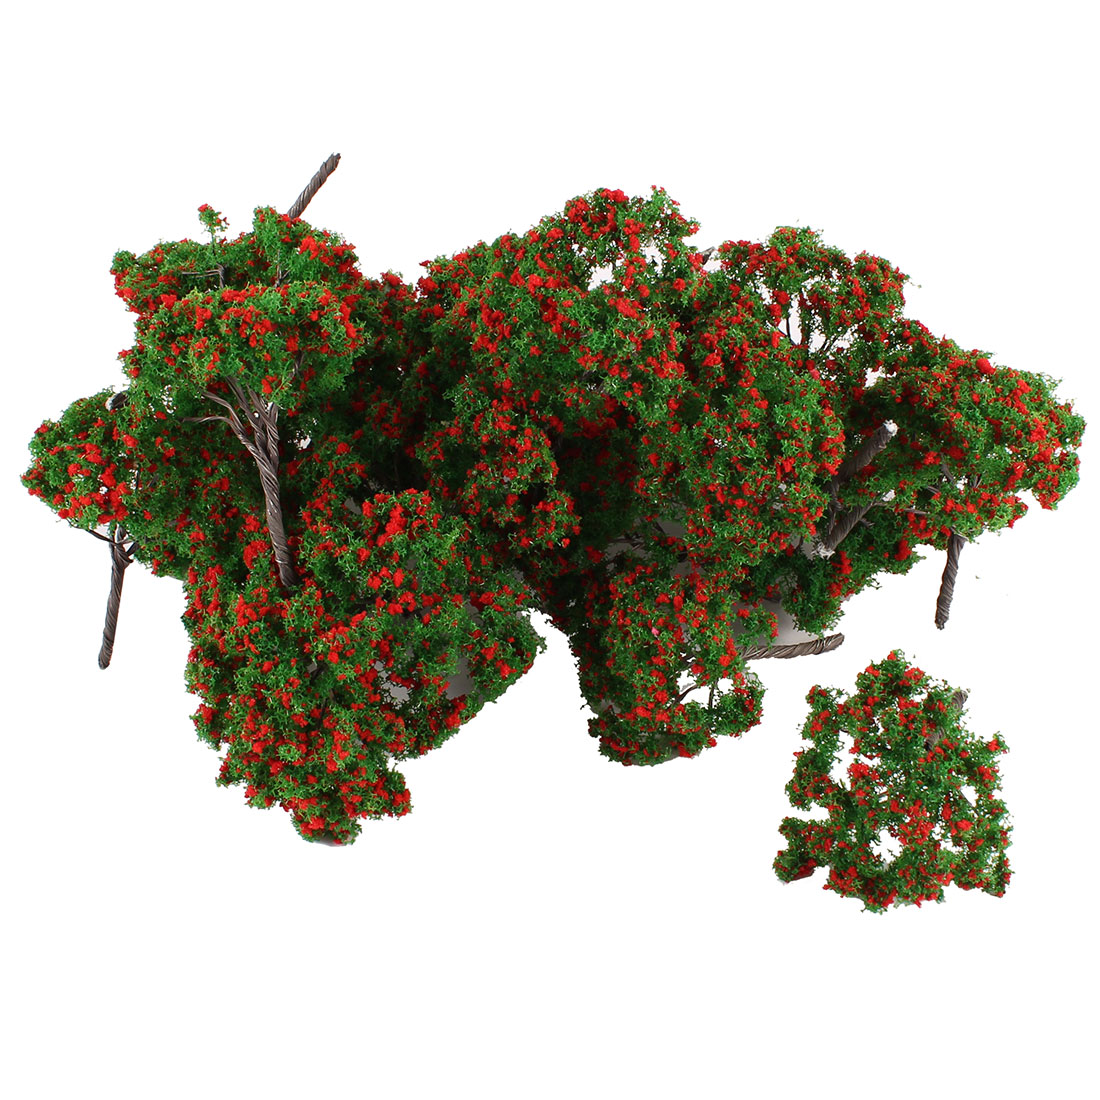 25Pcs Artificial Plastic Dark Green Leaf Red Flower Tree Ornamenet 6.5cm High